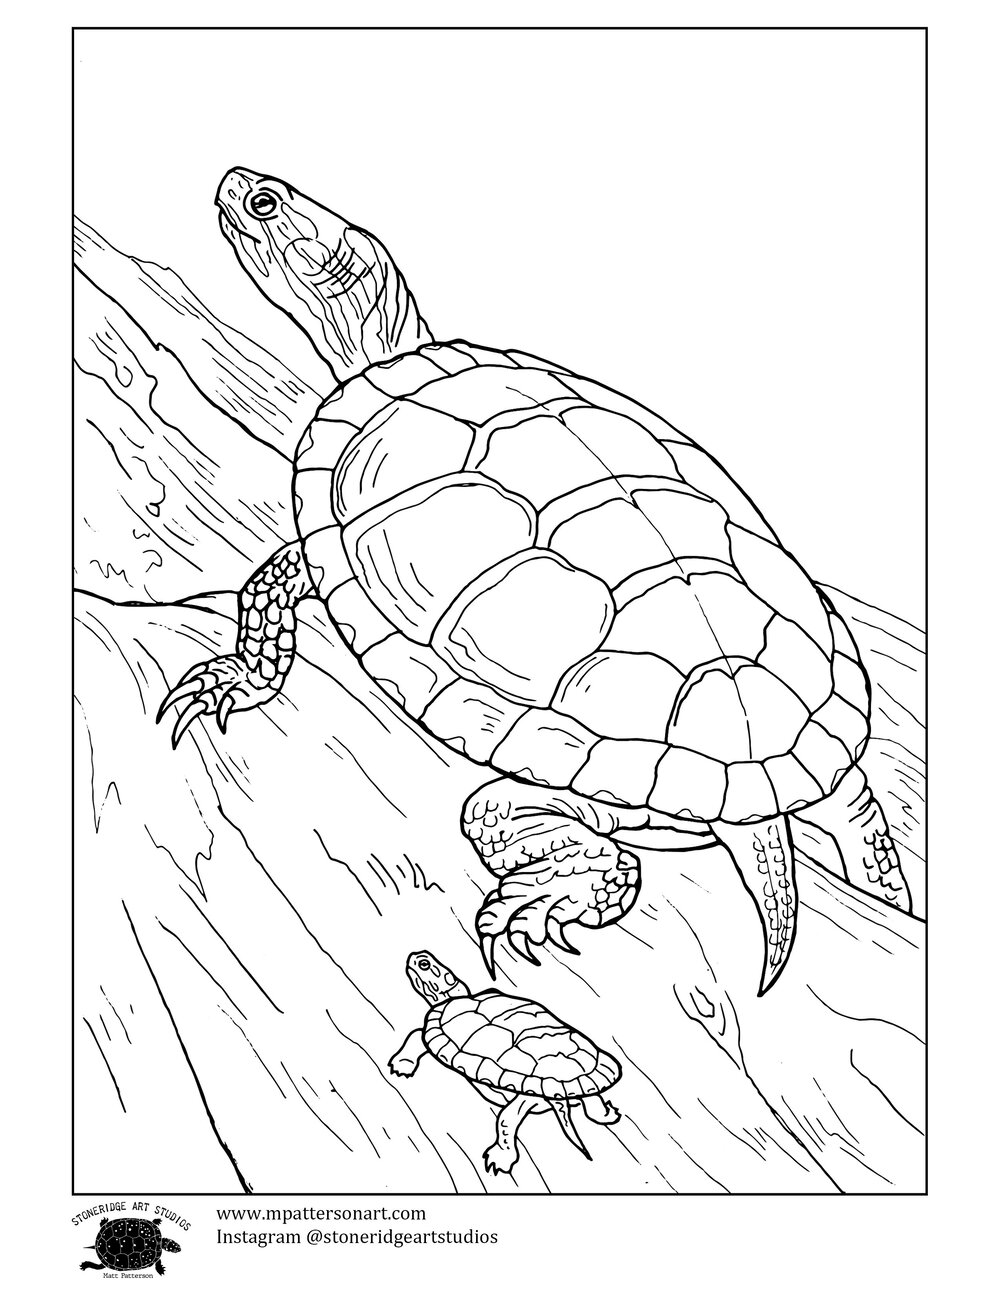 painted turtle coloring page box turtle drawing at getdrawings free download page turtle painted coloring